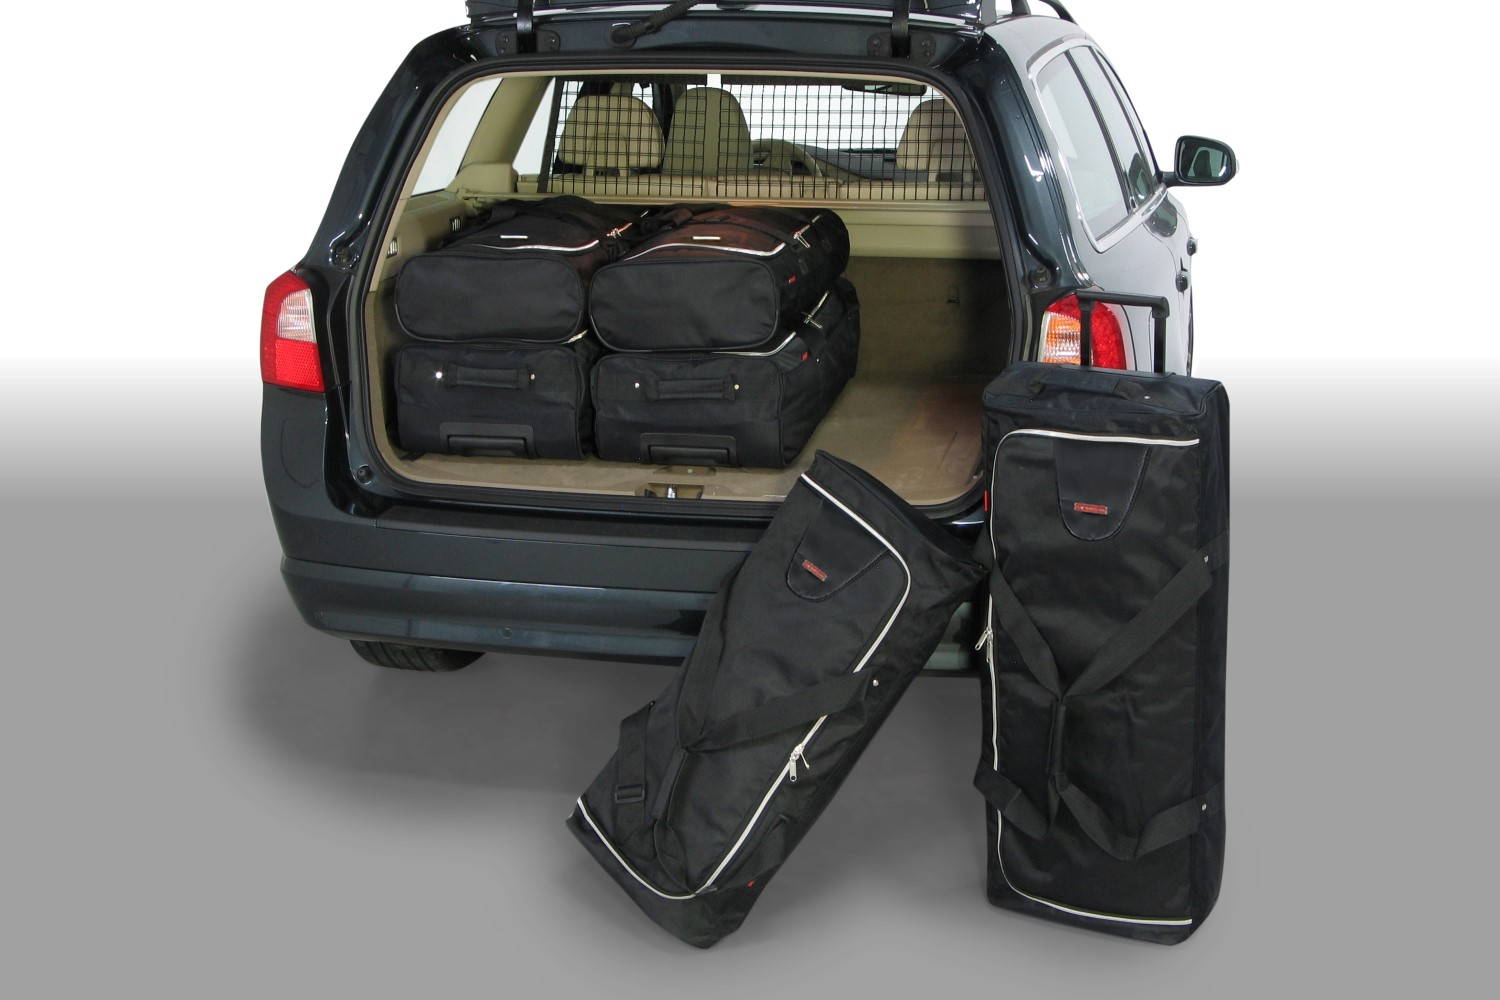 Volvo V70 (P24) 2007-2016 Car-Bags.com travel bag set (1)